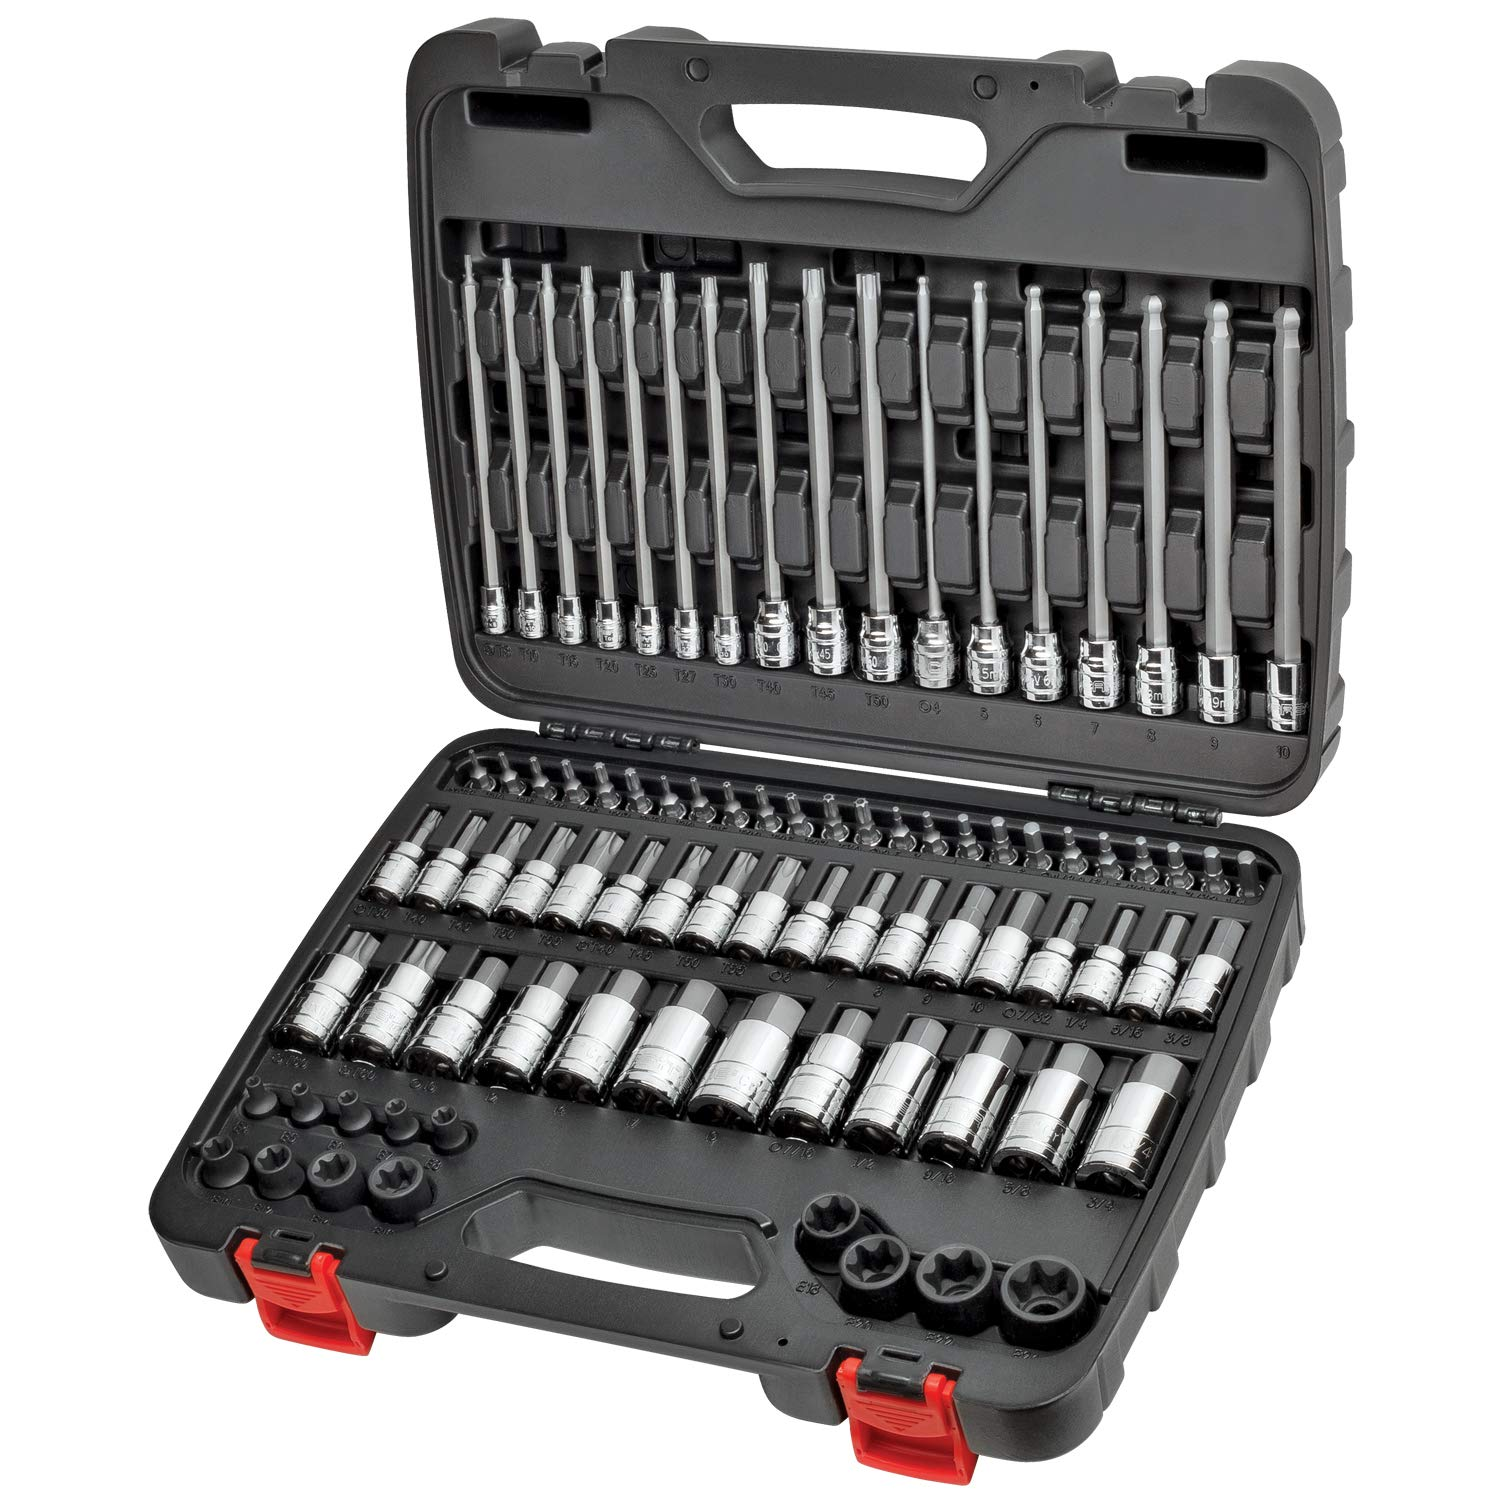 CARBYNE 84 Piece Master Hex & Torx Bit Socket Set | SAE & Metric, S2 Steel Bits | 1/4'', 3/8'' & 1/2'' Drive by Carbyne